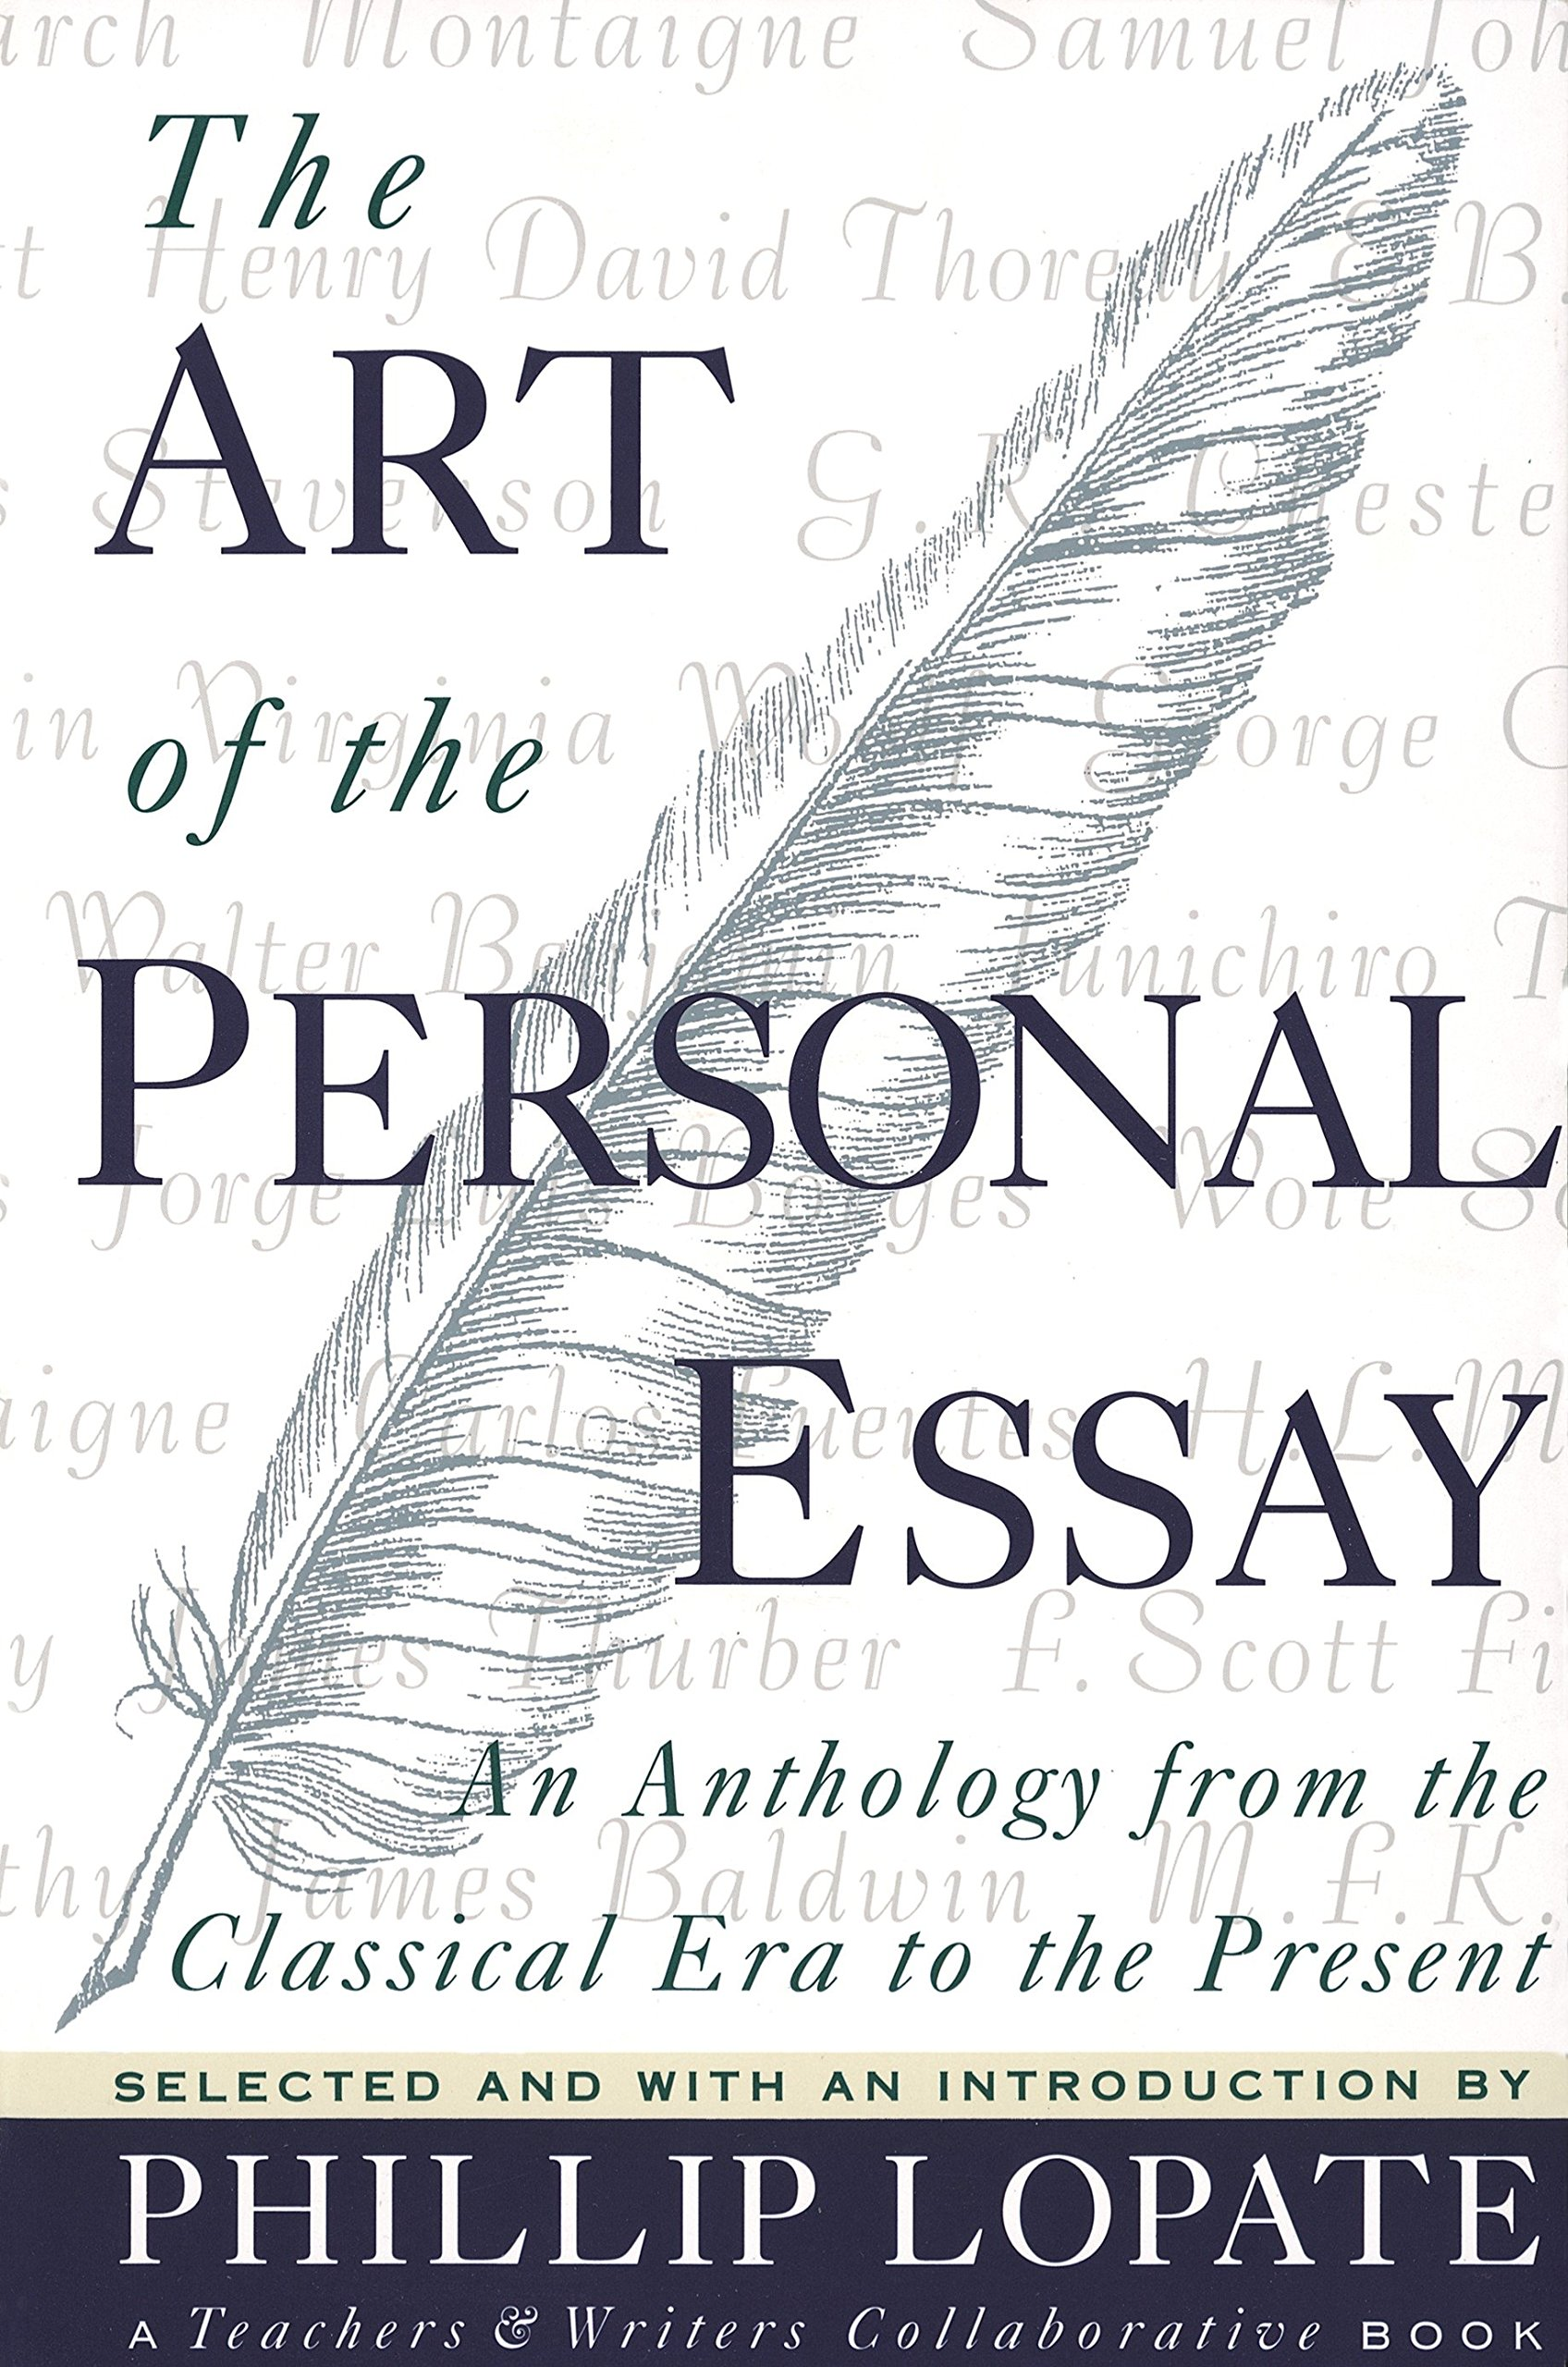 001 91bxbkzxmml The Art Of Personal Essay Beautiful Phillip Lopate Table Contents Sparknotes Full